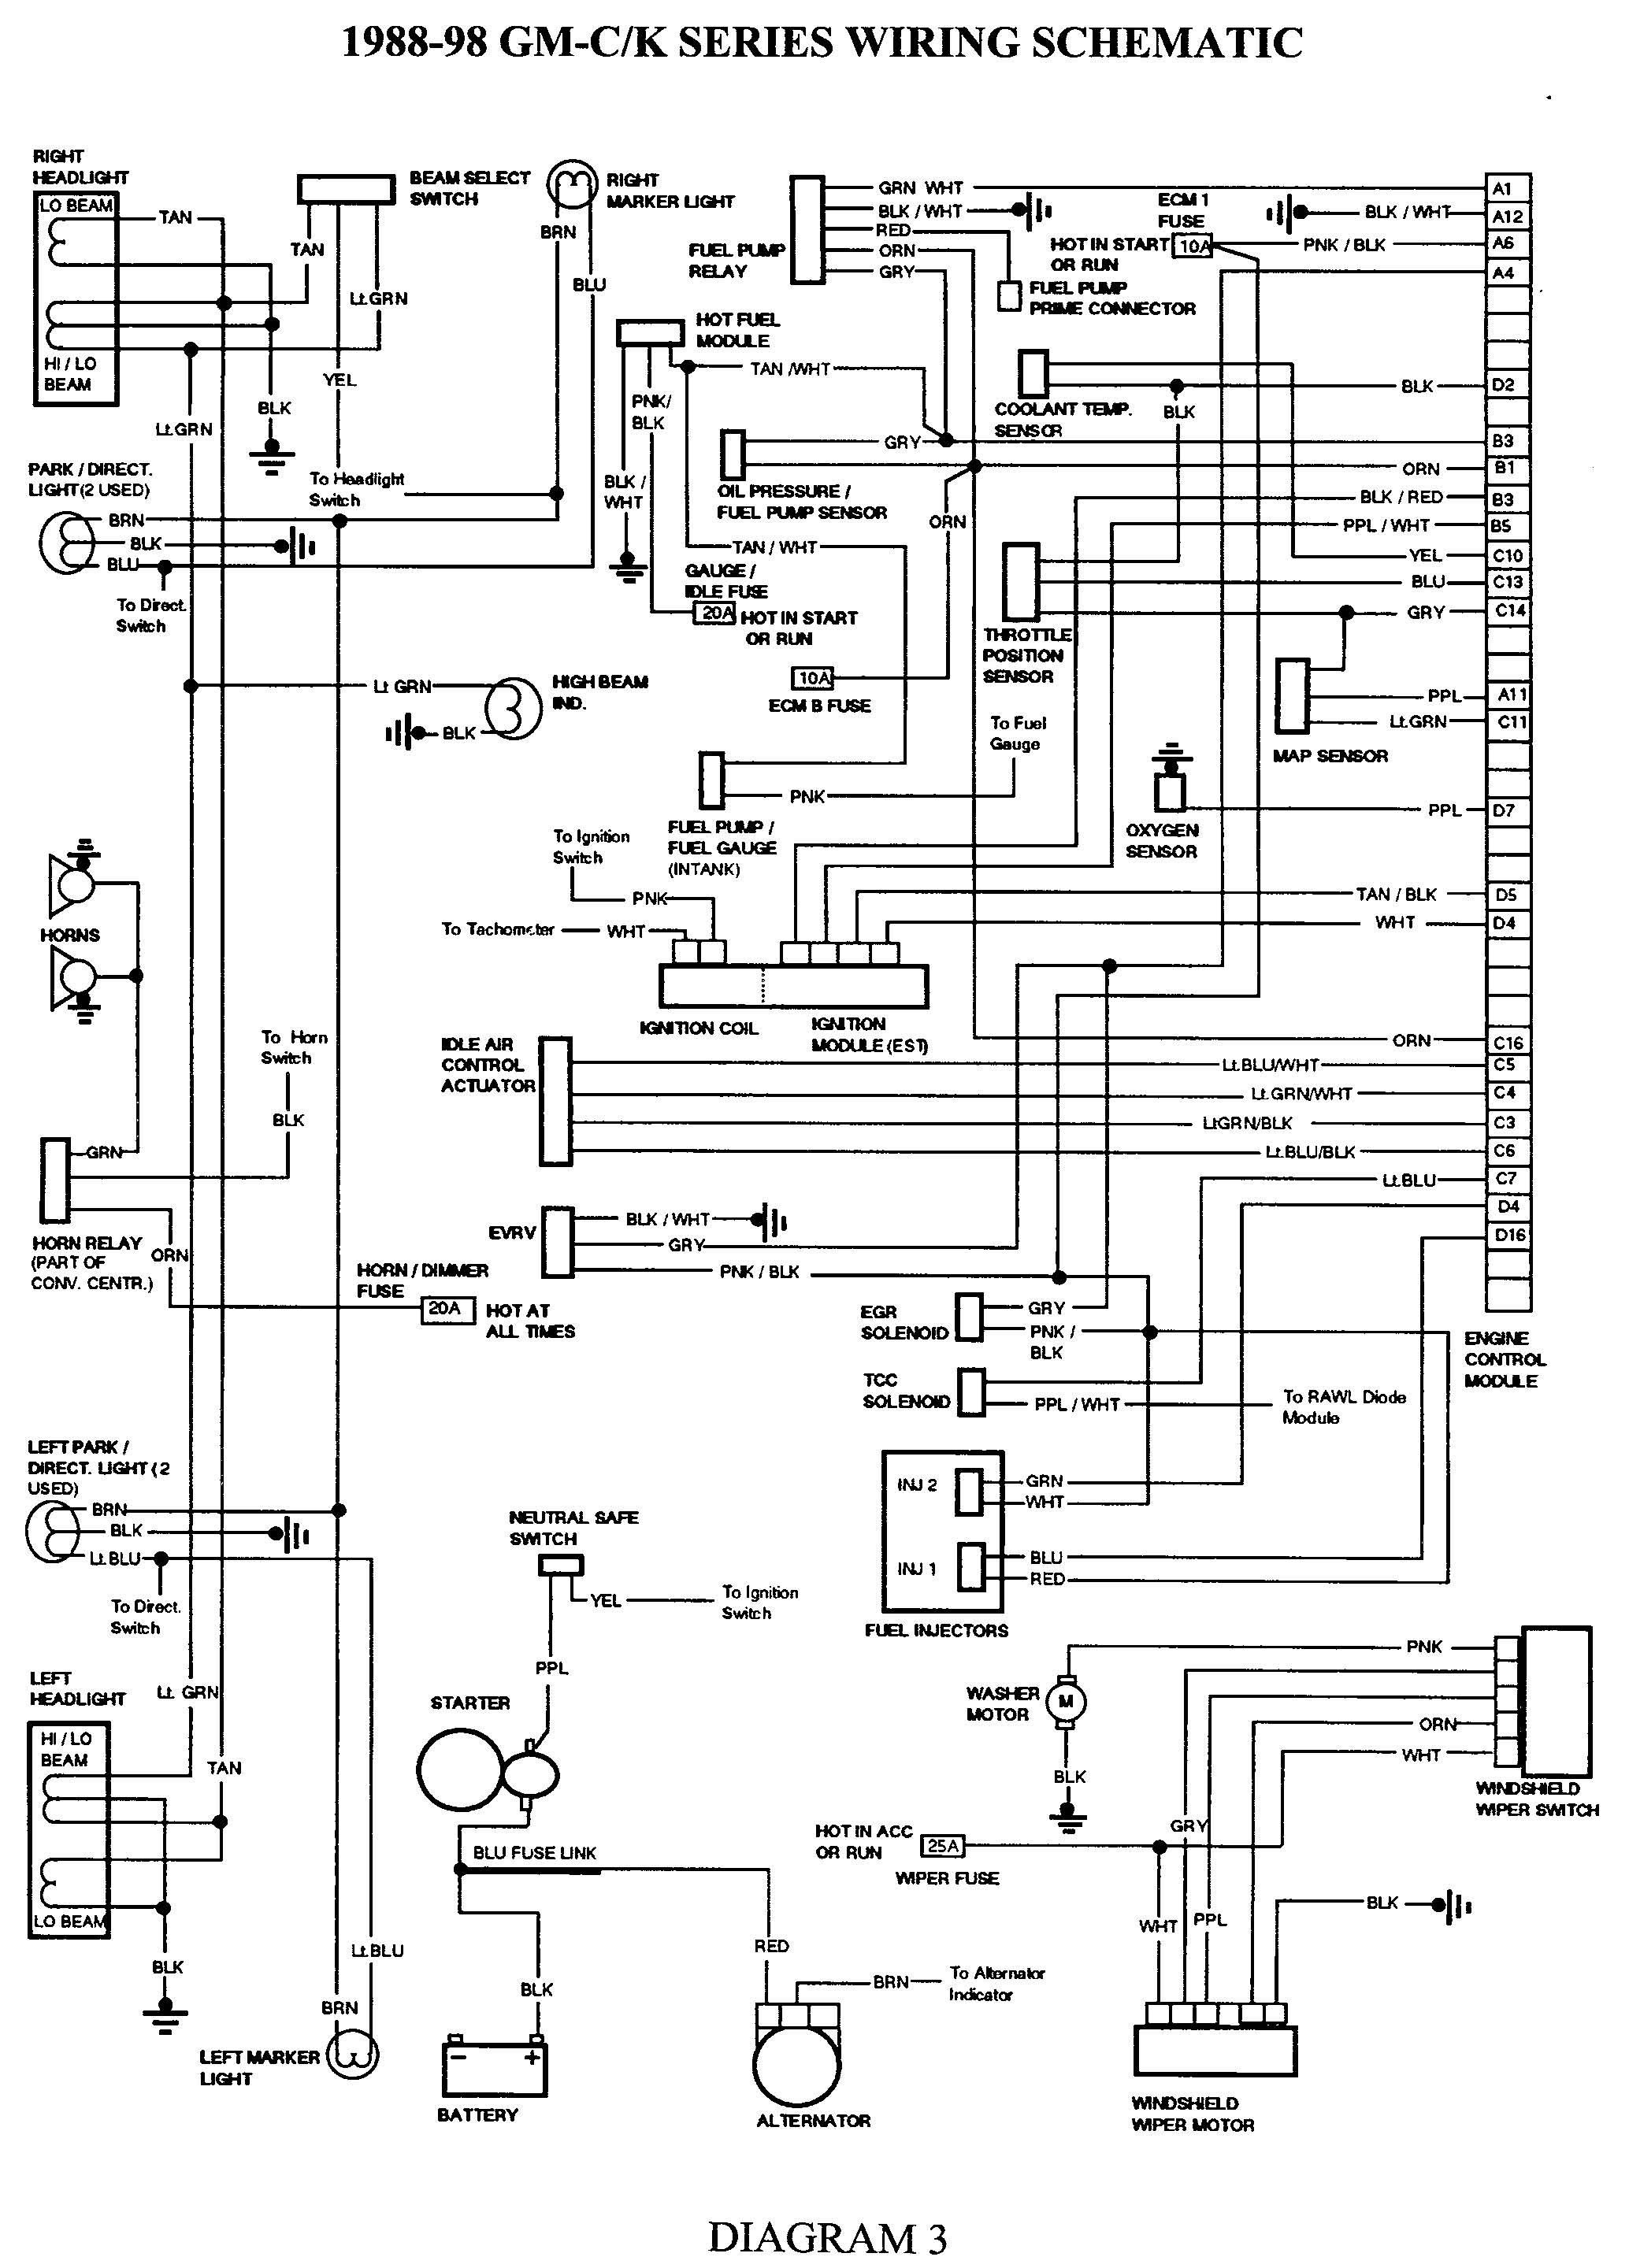 2008 Gmc Sierra Parts Diagram 98 Gmc Sierra Headlight Wiring Diagram  Circuit Diagrams Image Of 2008